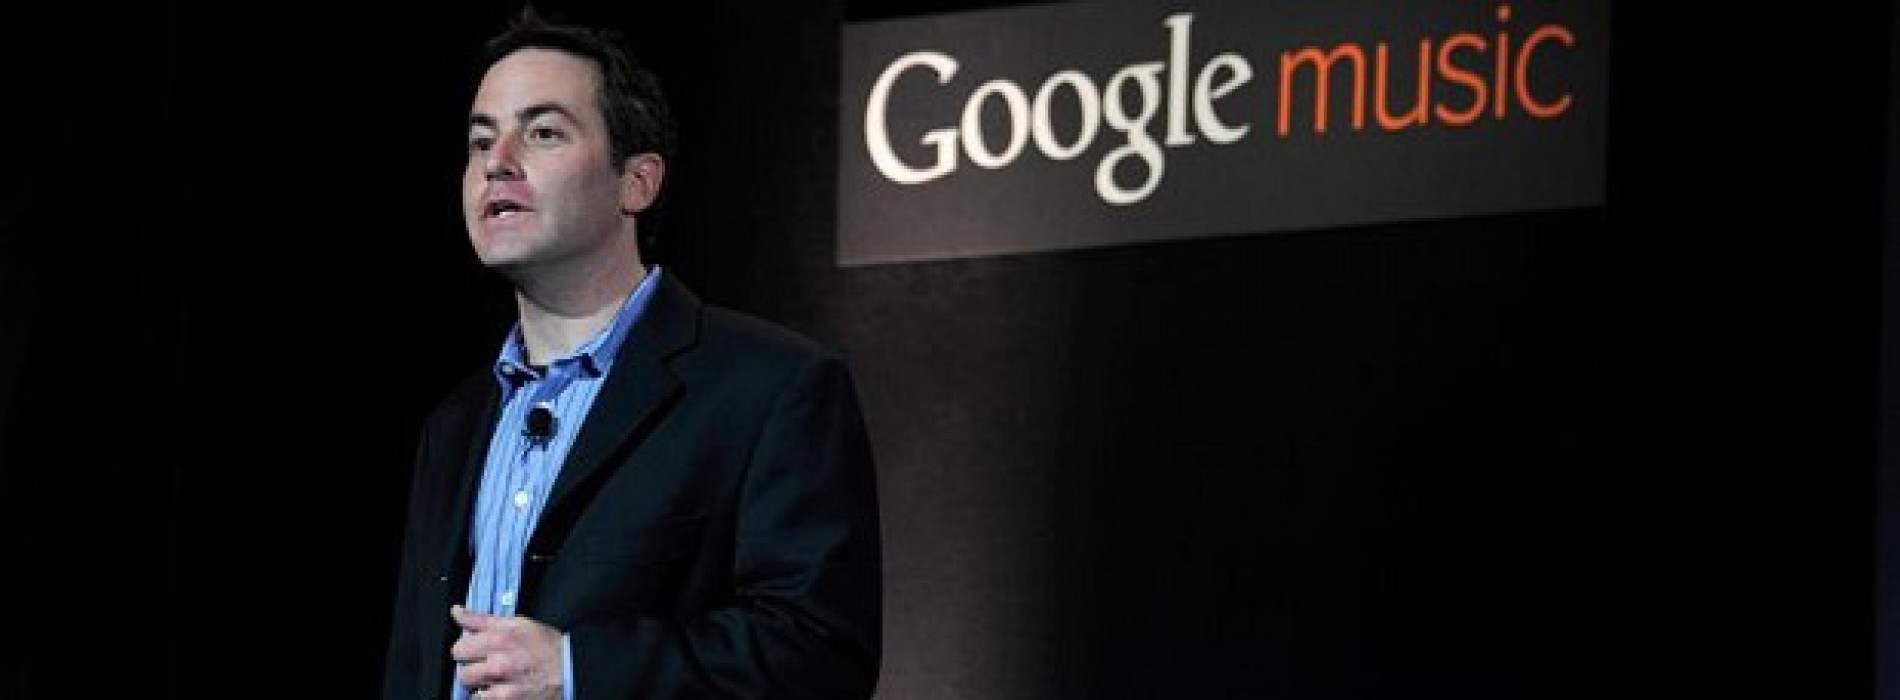 Google not satisfied with Music numbers, aims for better results in 2012